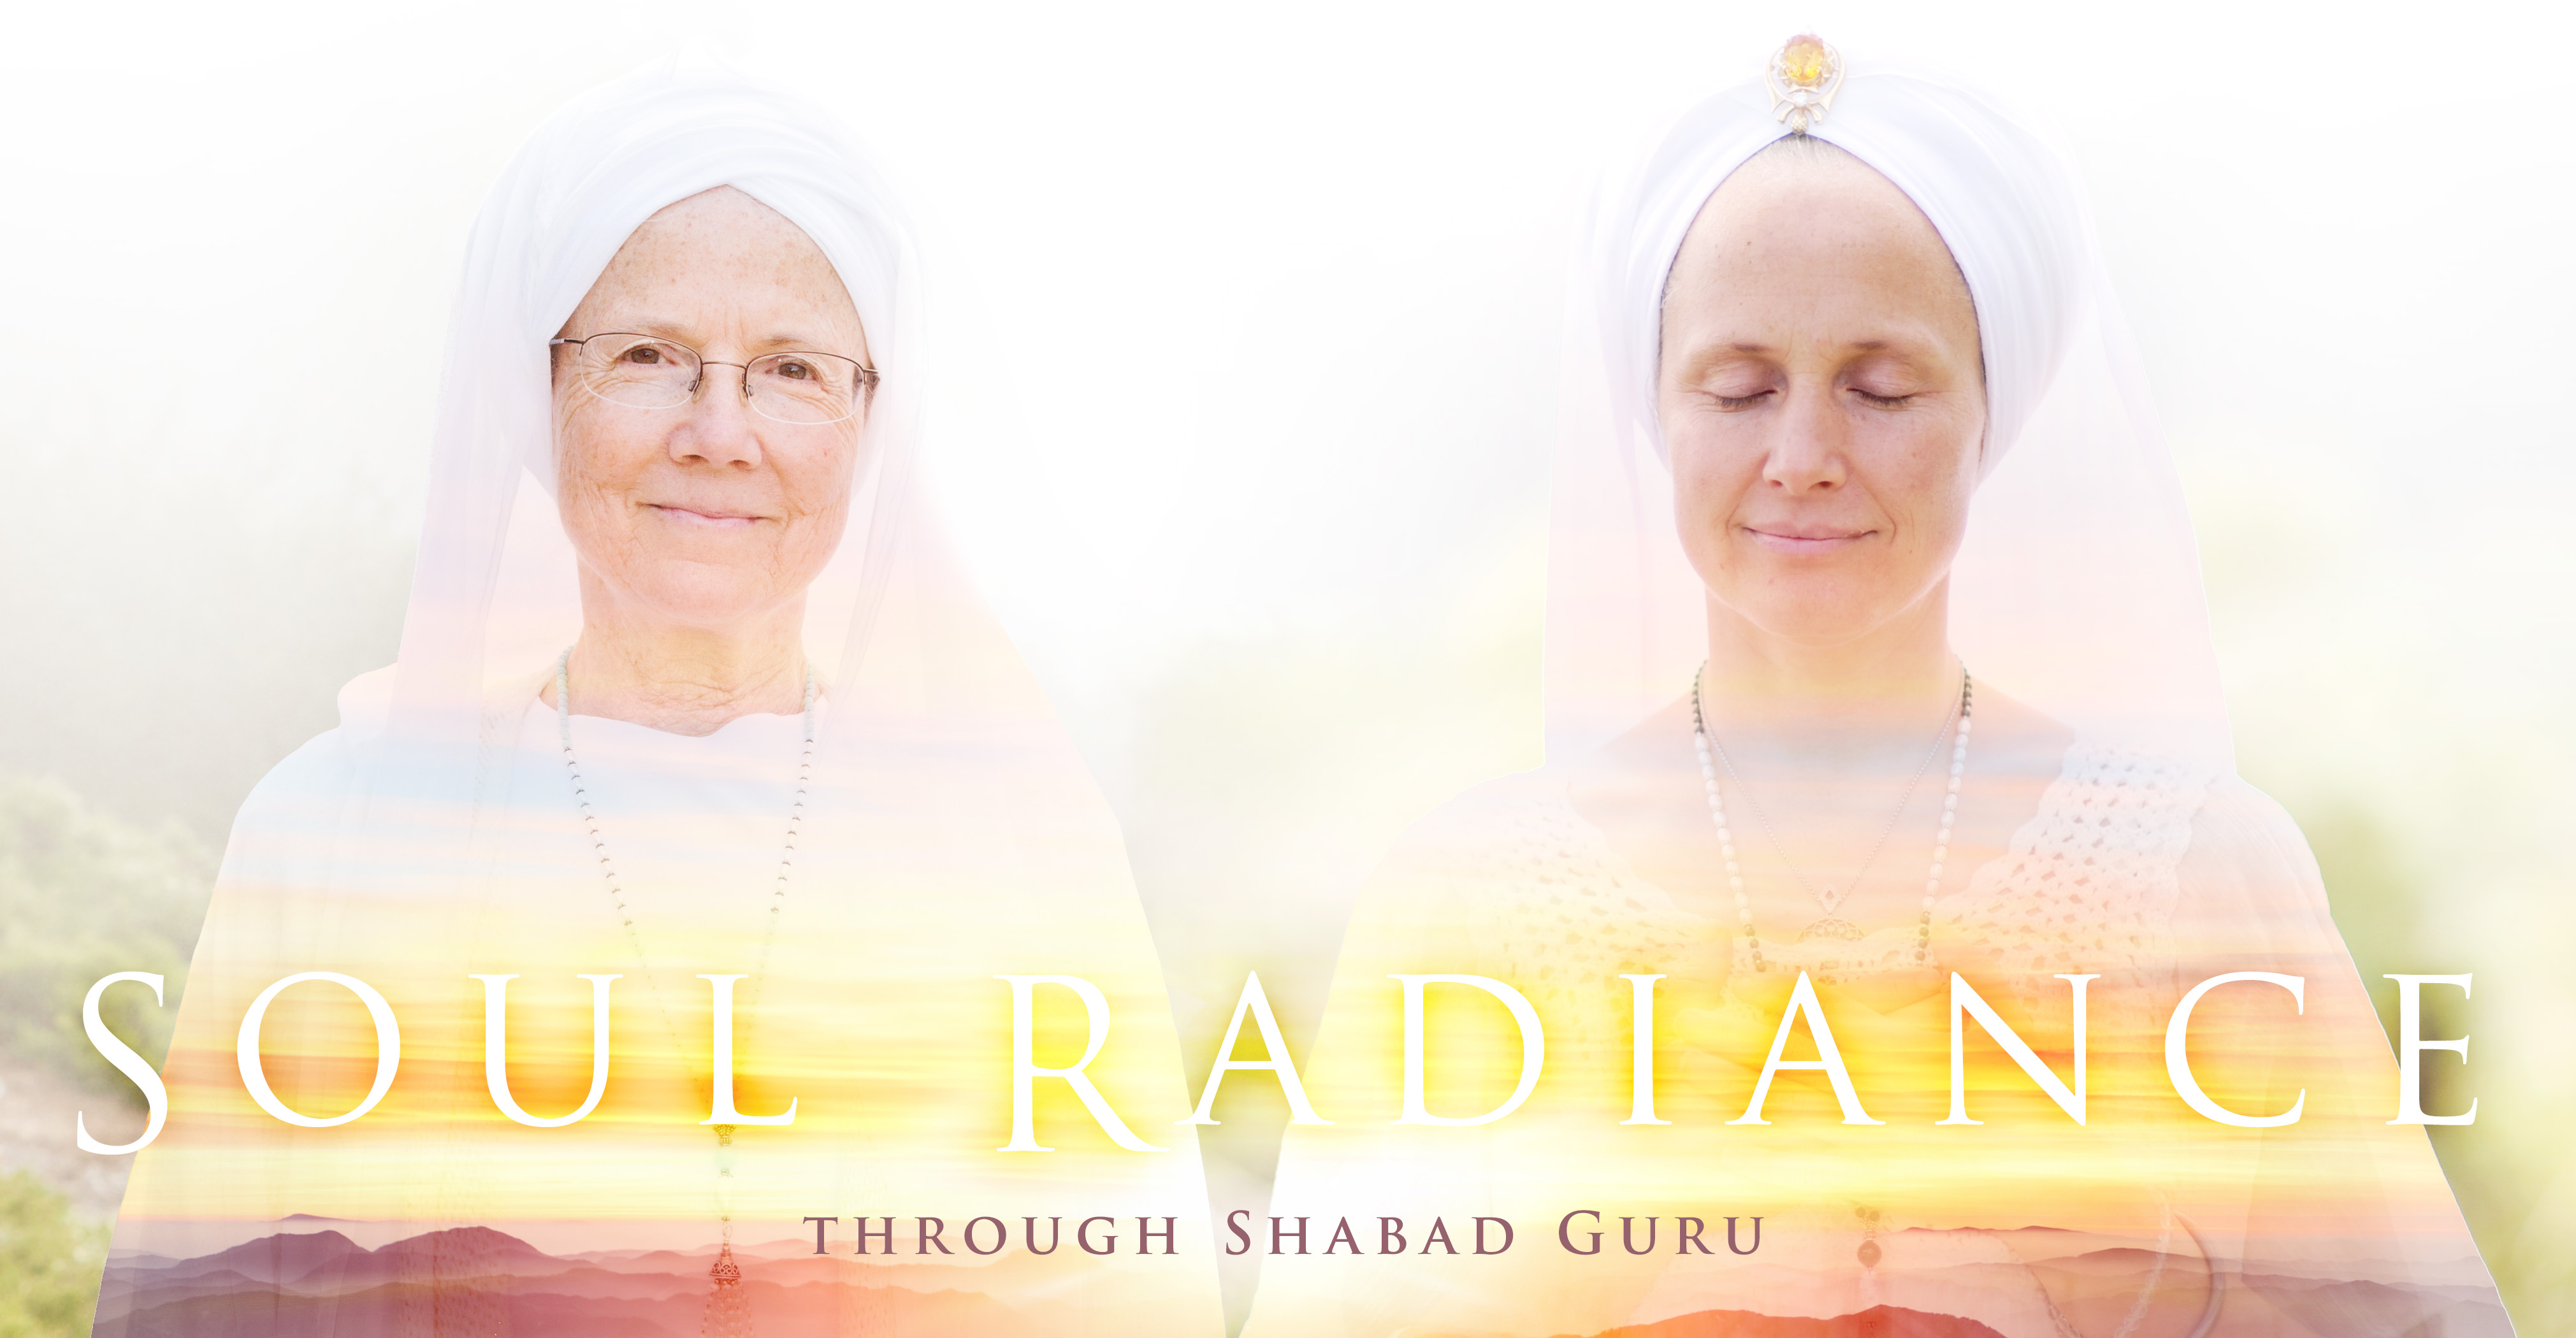 Tickets for Soul Radiance through Shabad Guru in Millis from BrightStar Live Events